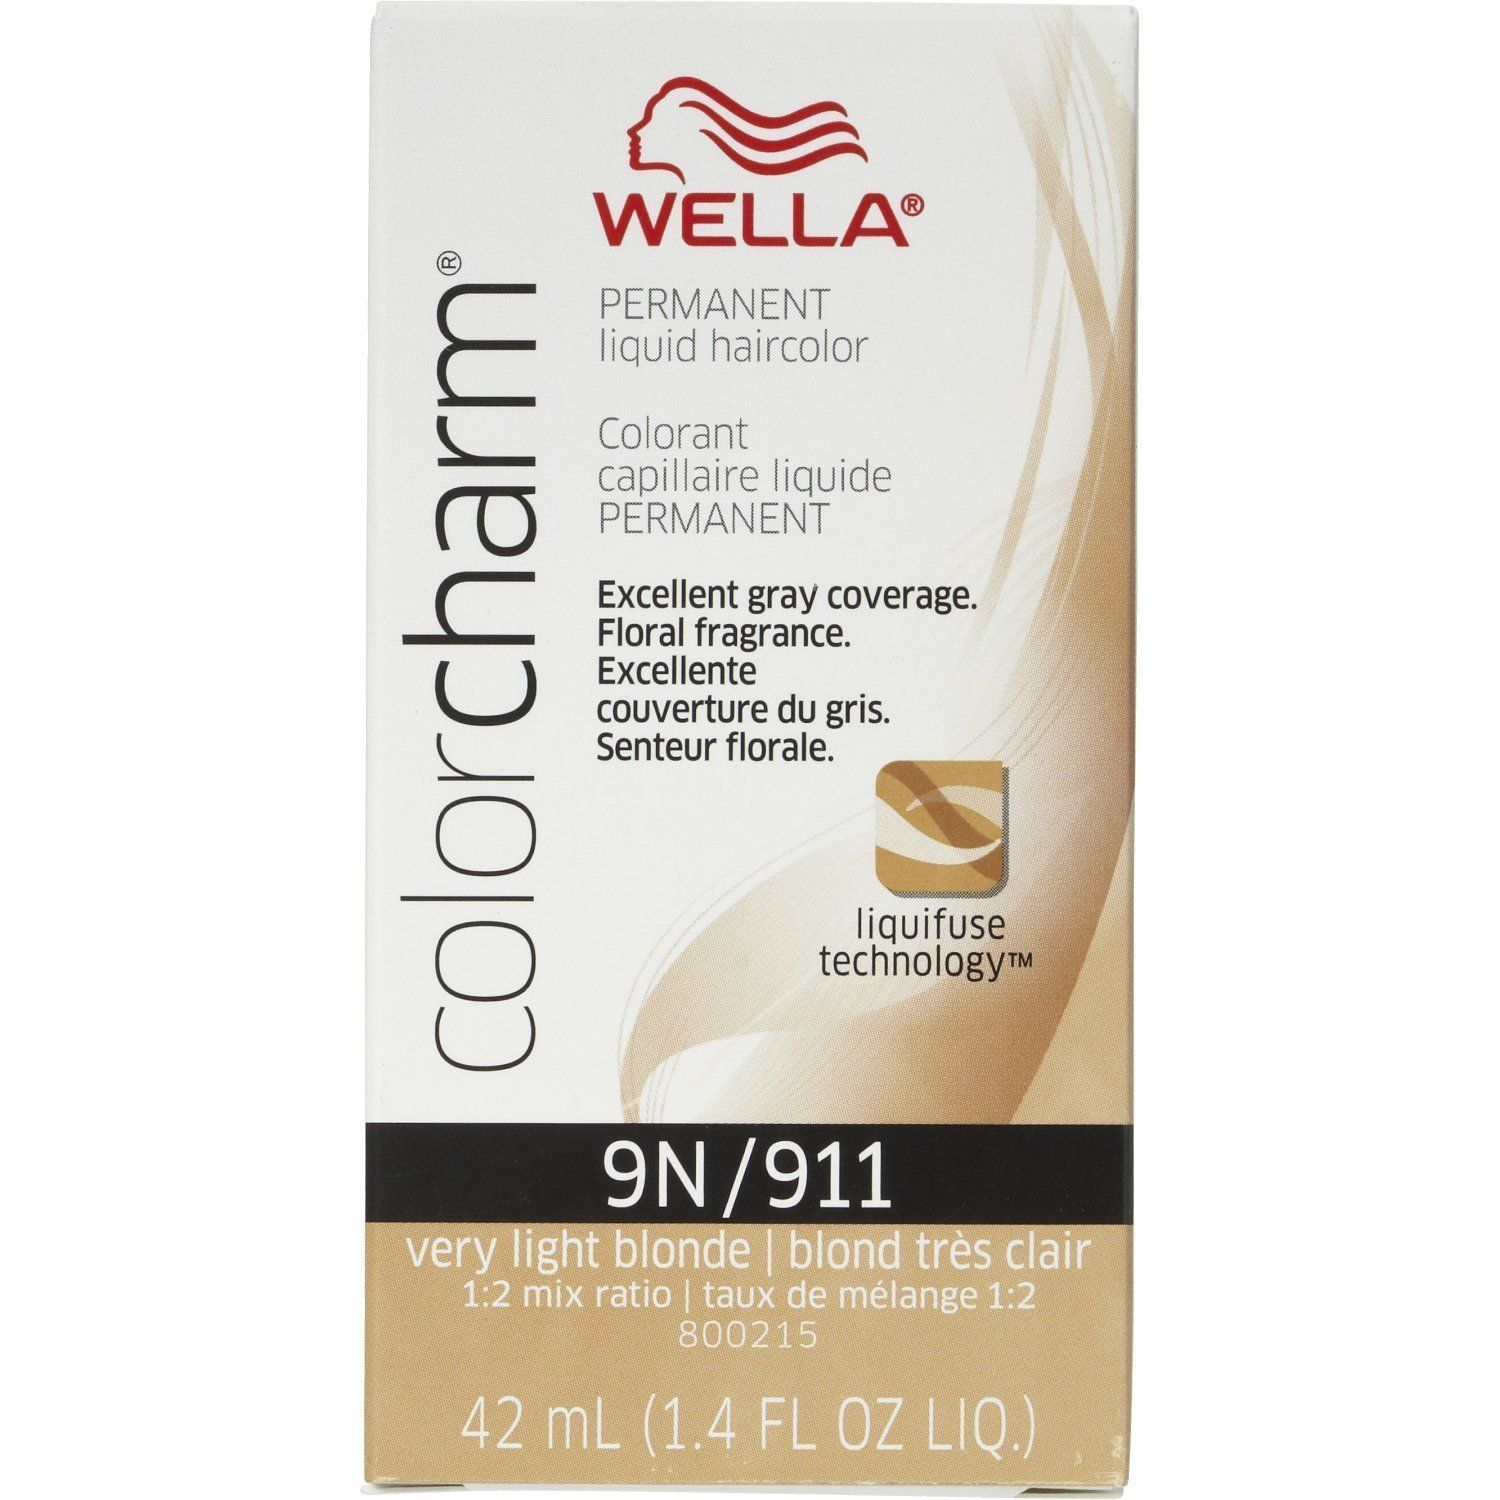 Wella Color Charm 9N/911 Very Light Blonde Permanent Liquid Hair Color Value Packs (12 pcs) *** Click image to review more details.